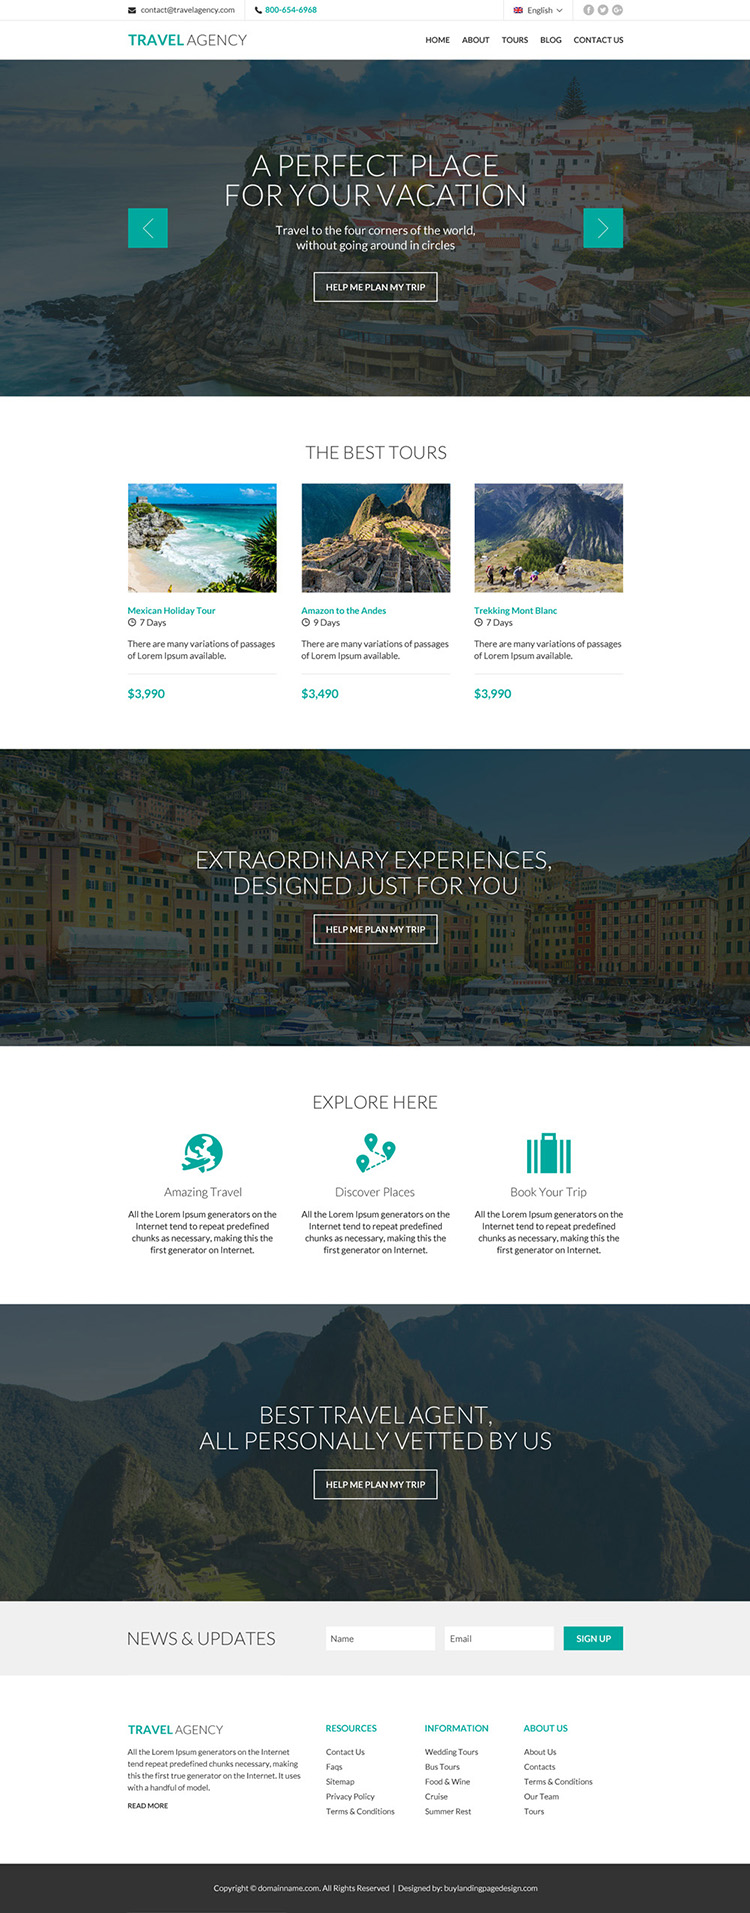 best tour and travel agency modern website design